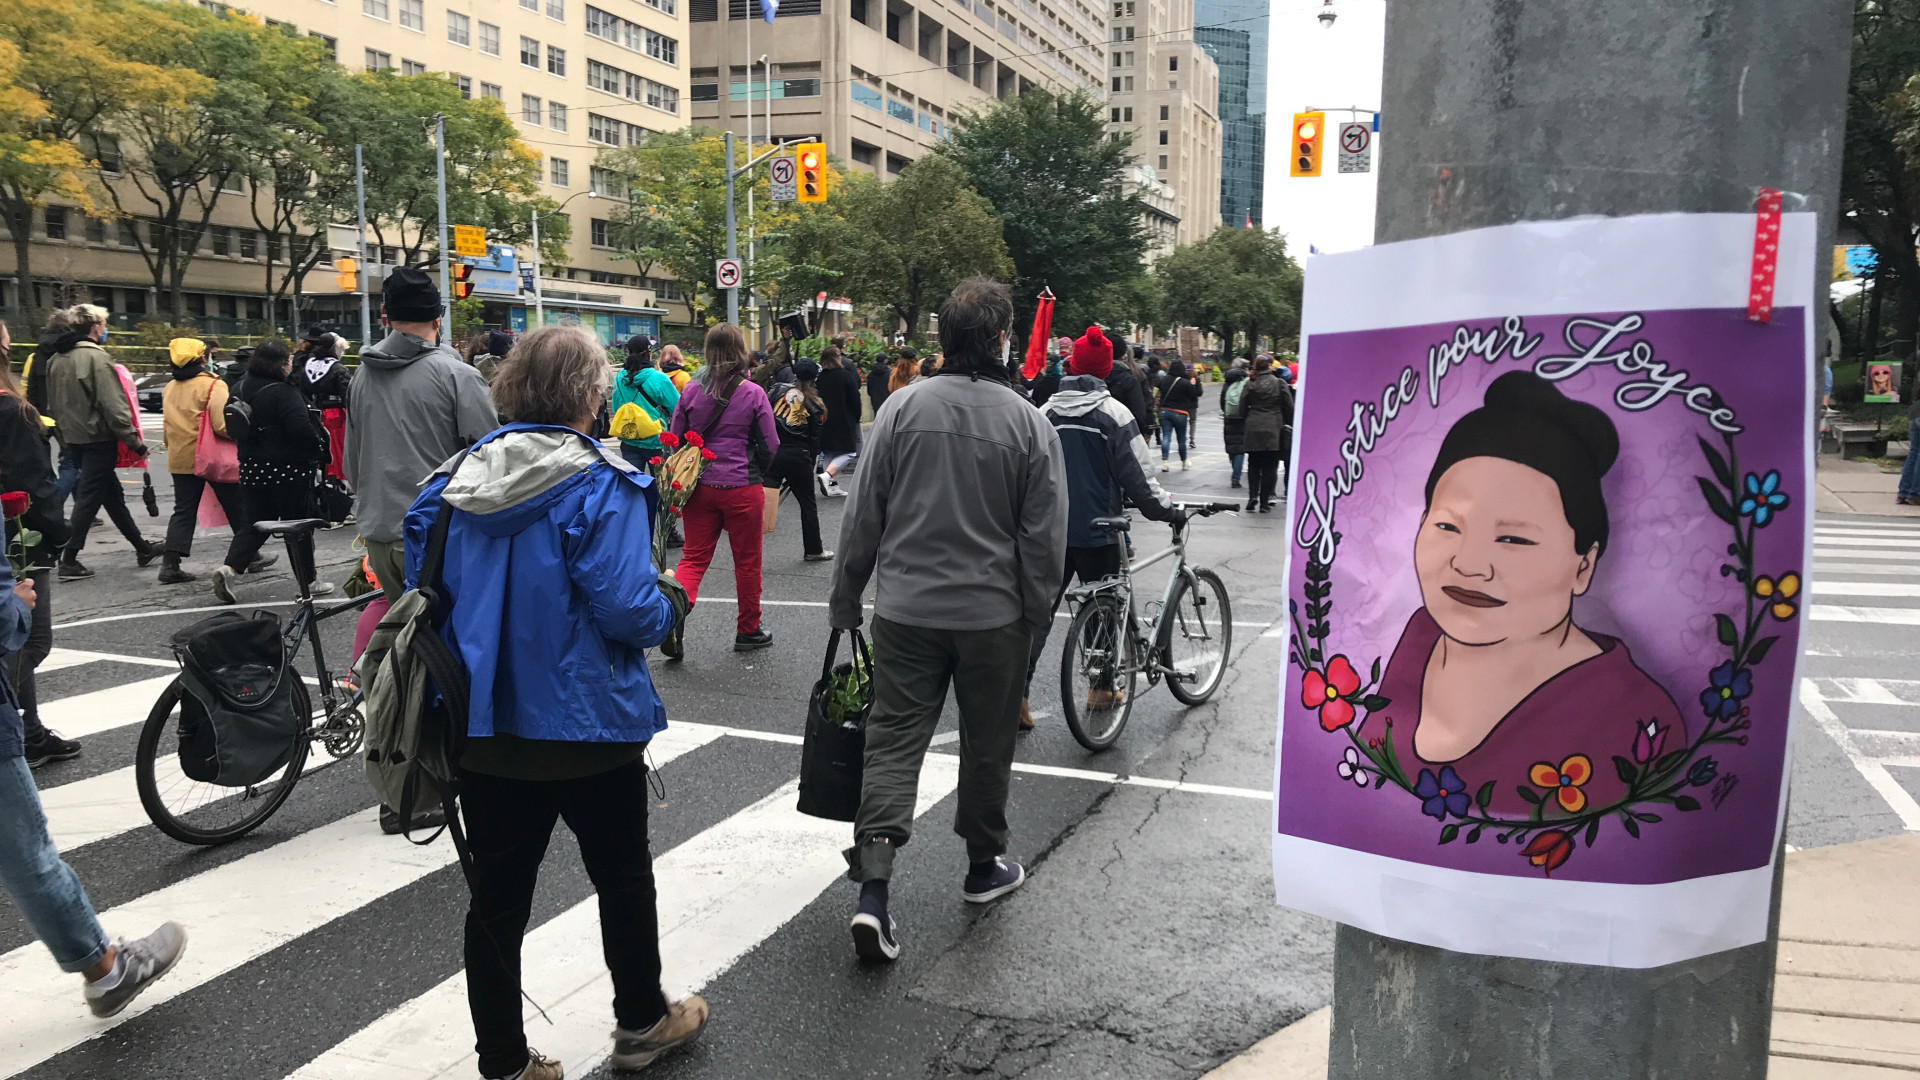 Toronto protesters demand justice for Quebec's Joyce Echaquan